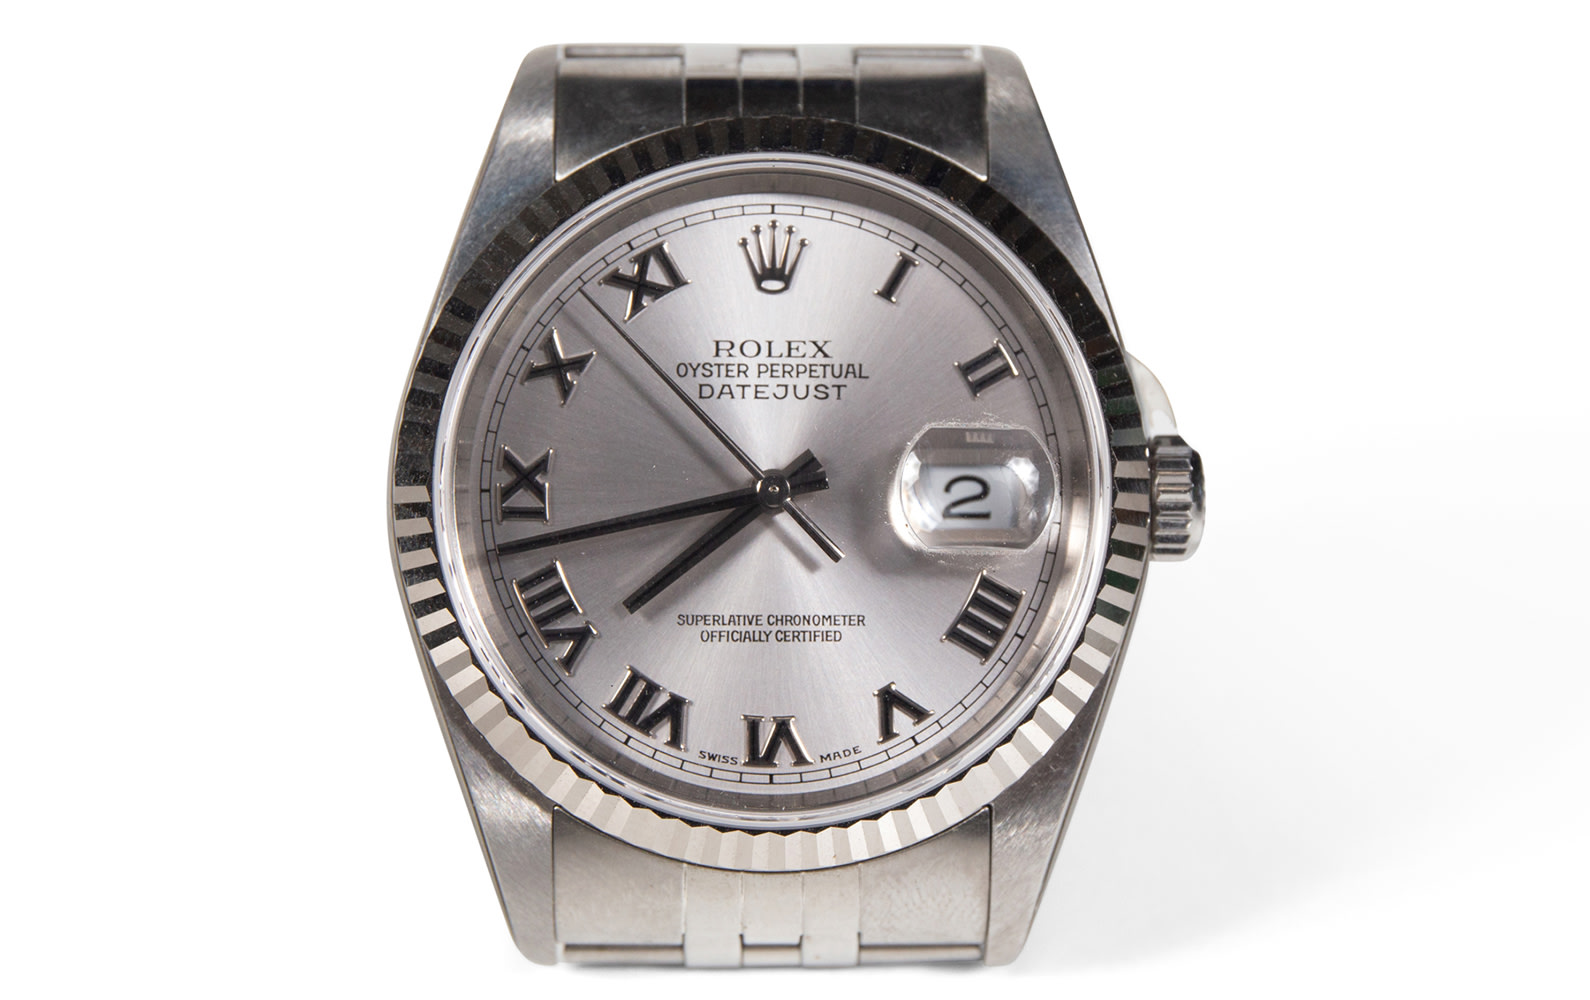 Rolex Oyster Perpetual Datejust Watch, Ref. 16234